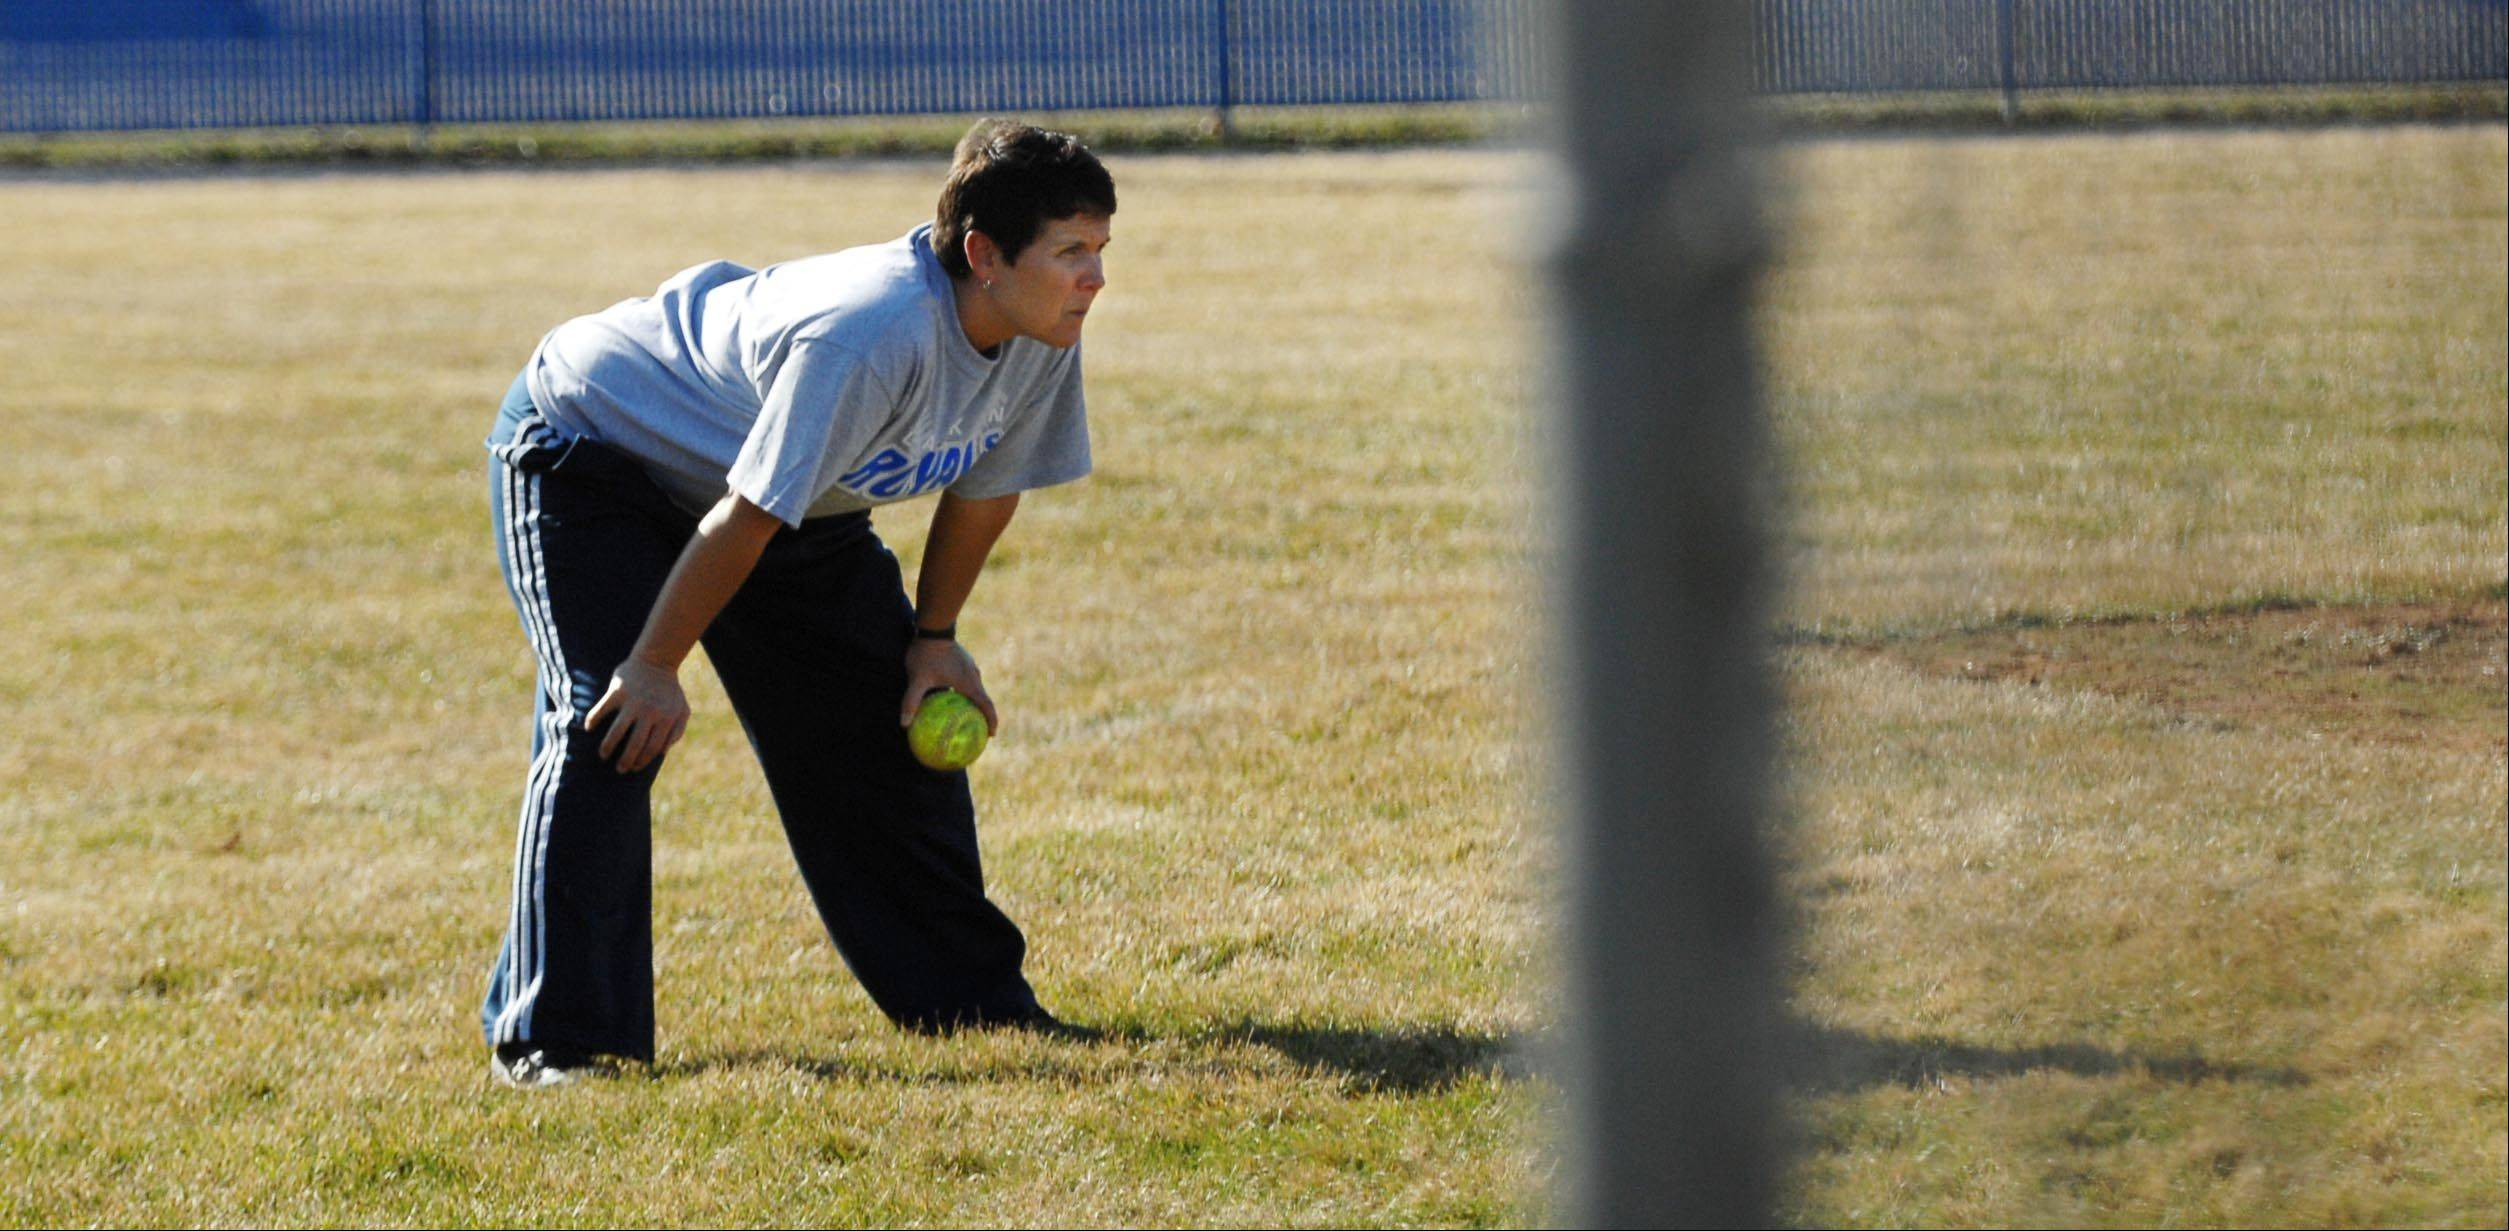 New Larkin softball coach Anne Vogt at practice in Elgin.